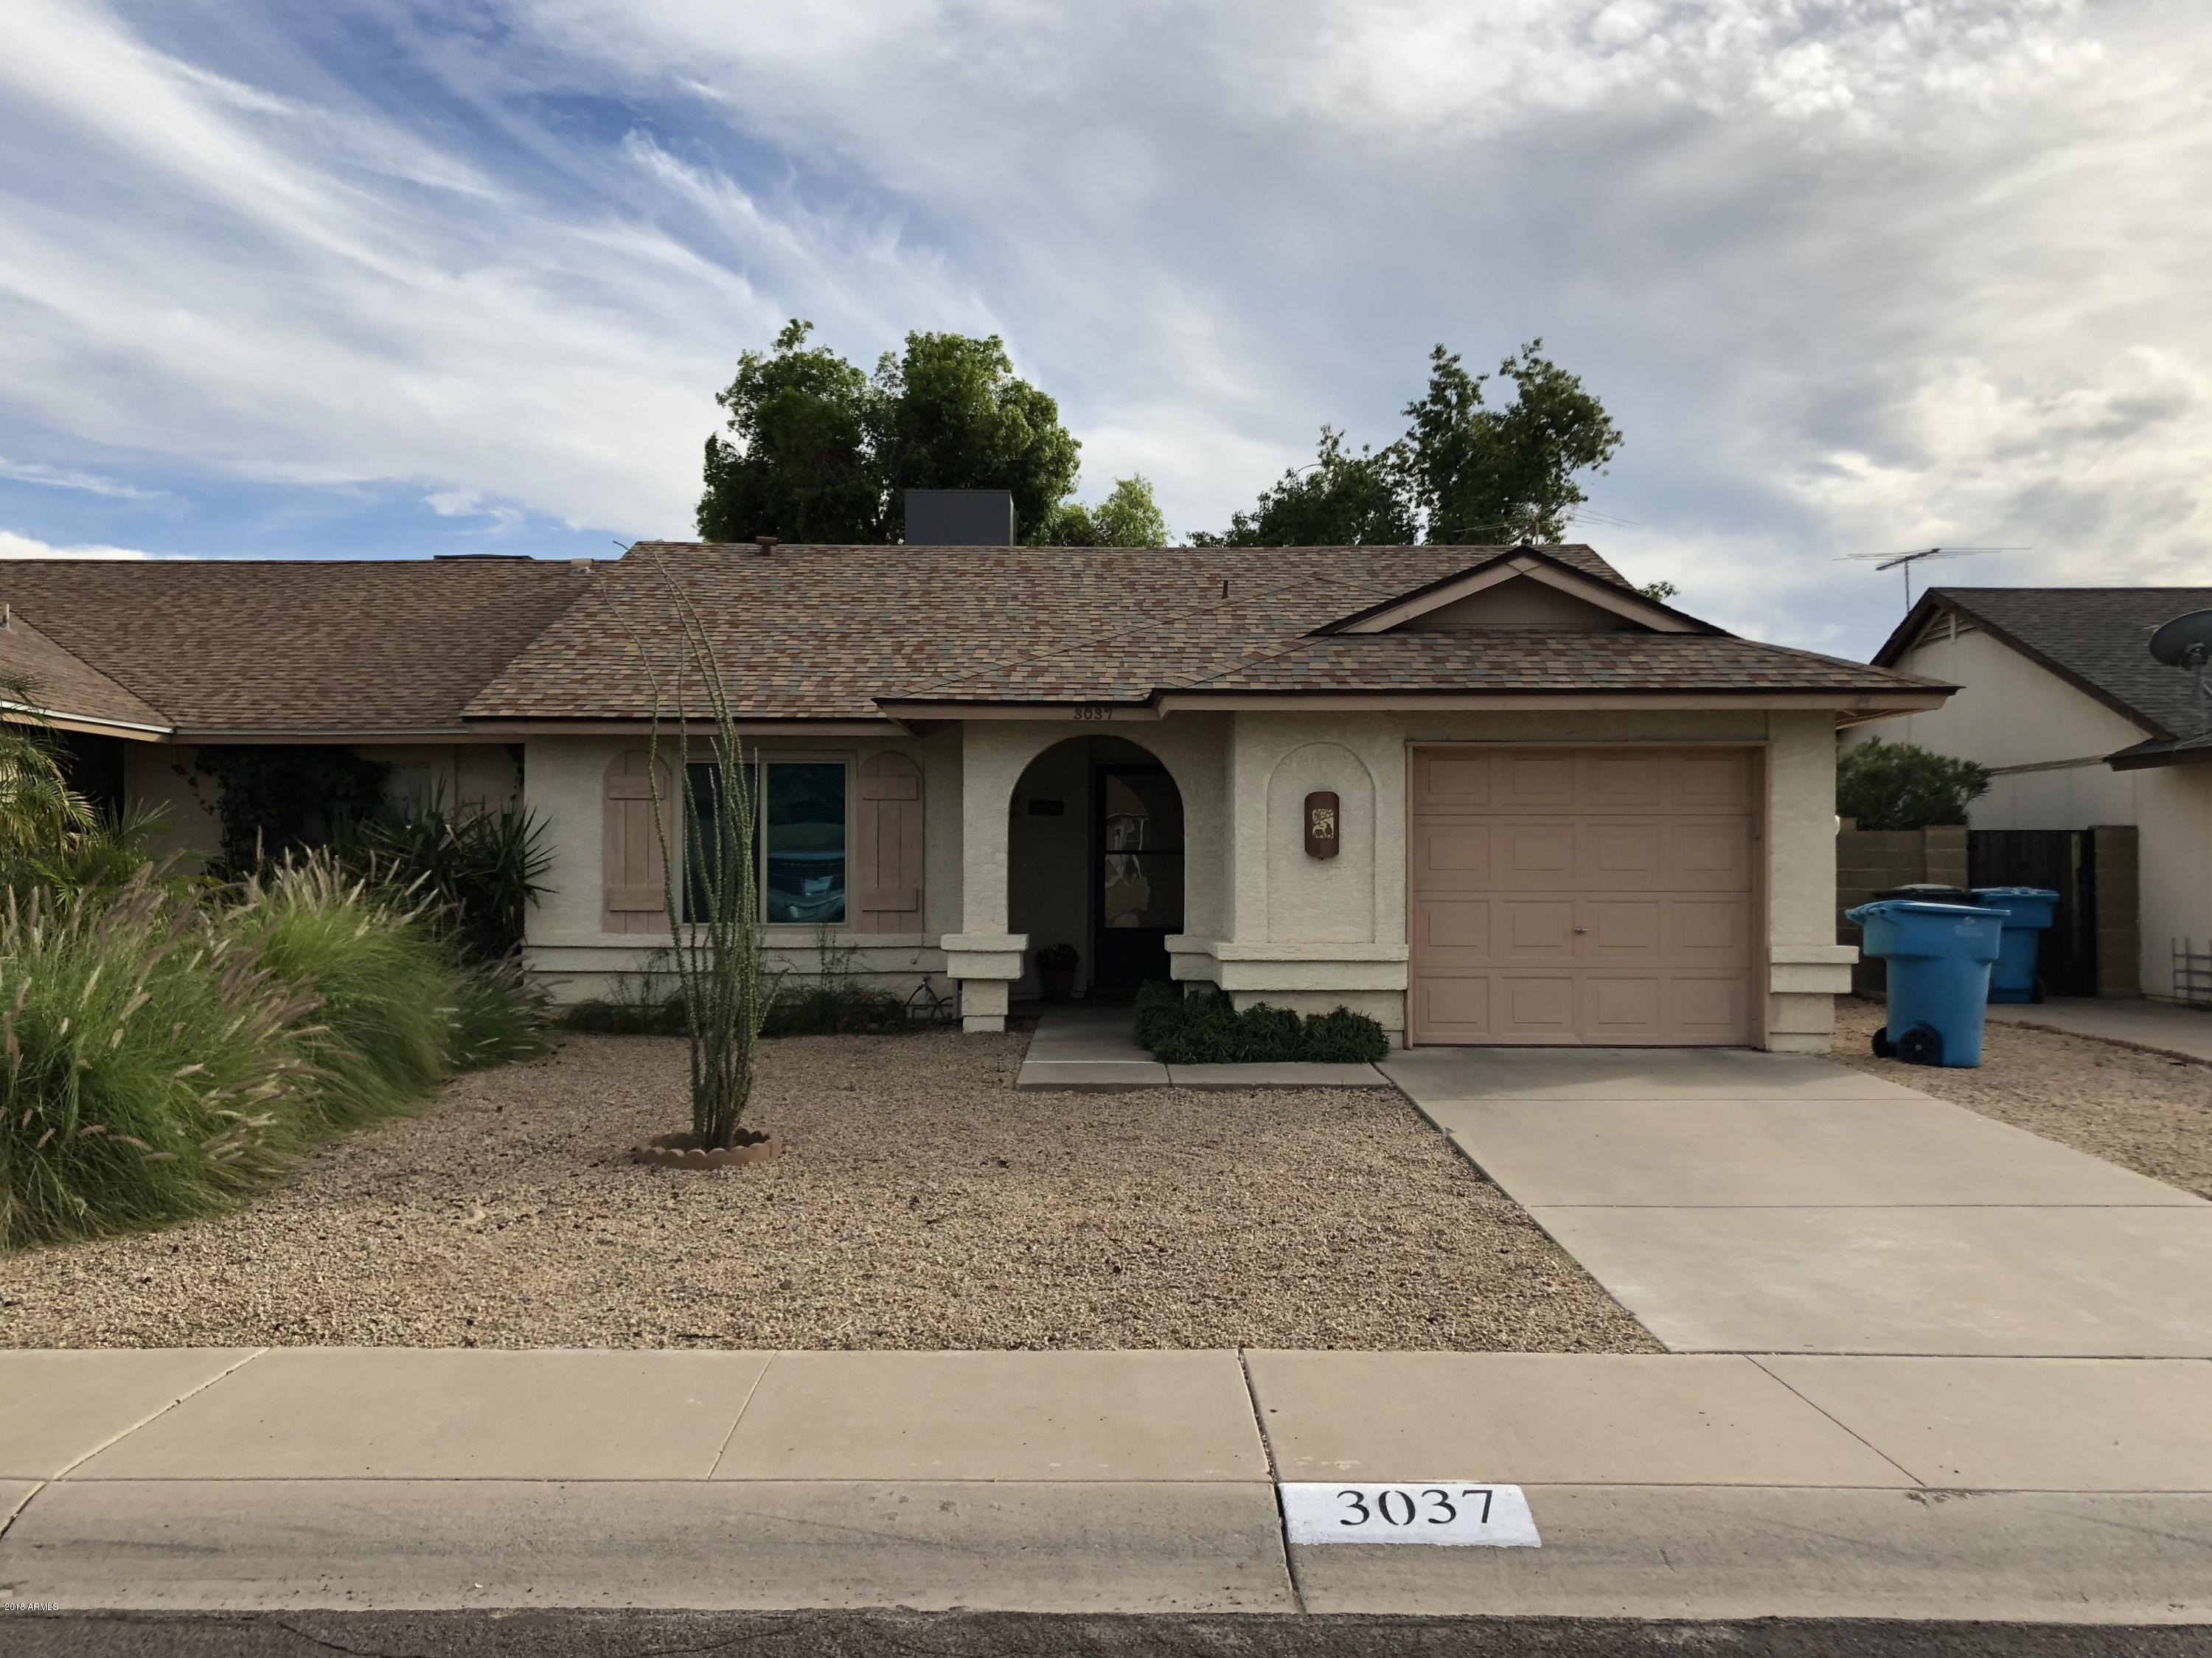 Photo of 3037 W MOHAWK Lane, Phoenix, AZ 85027